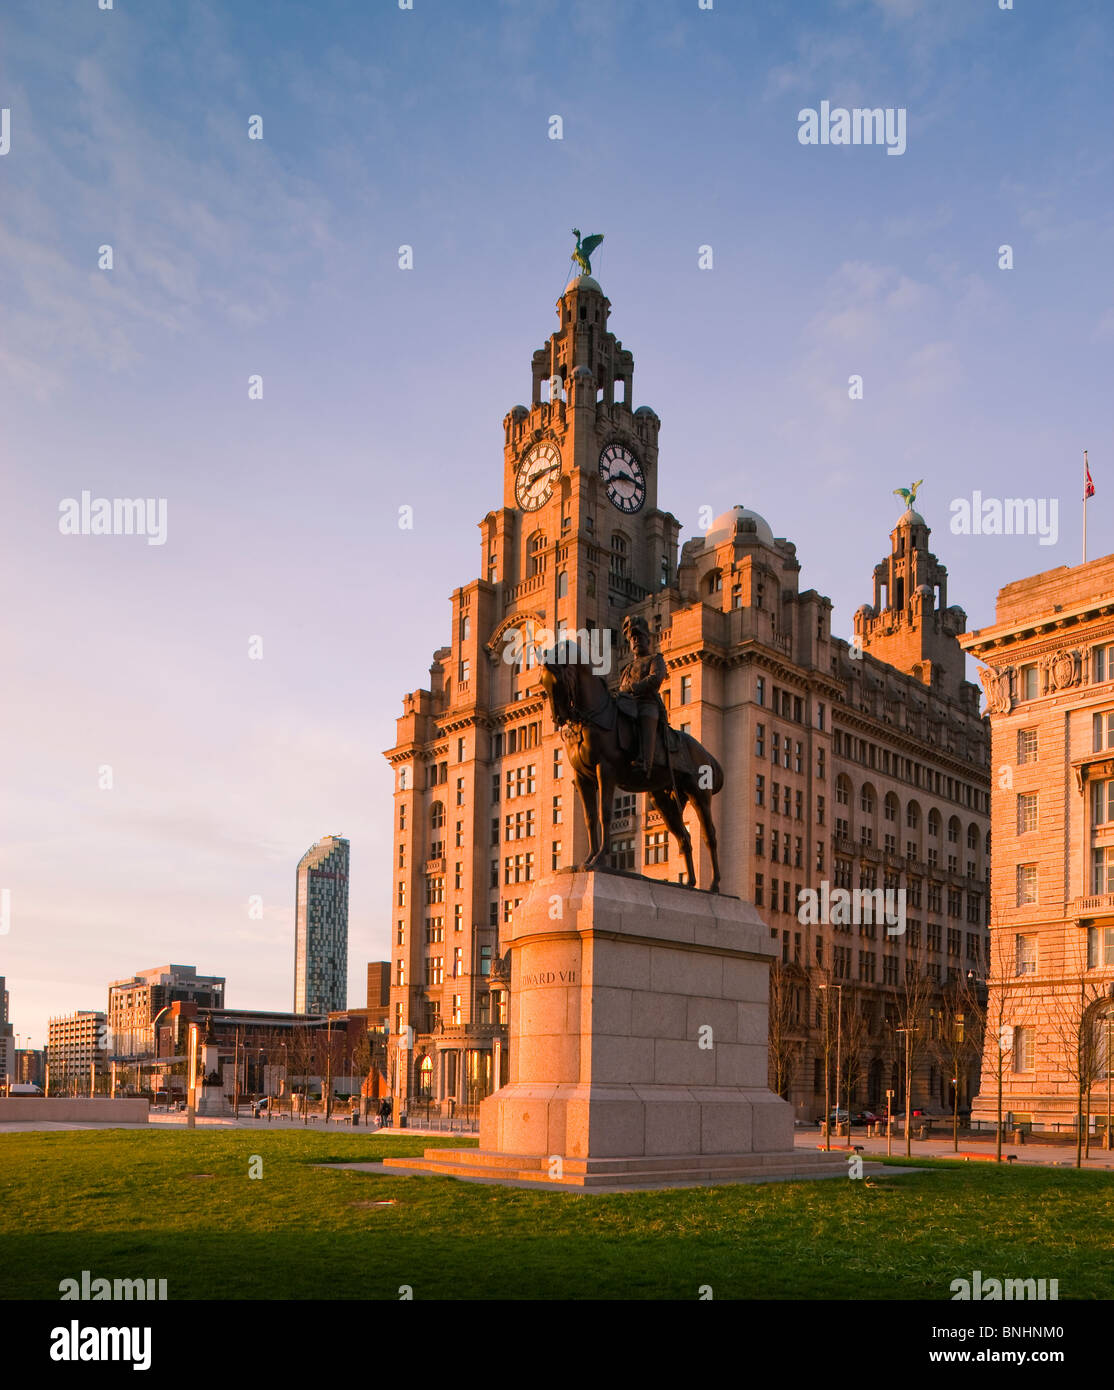 The Port of Liverpool Cunard and Liver Buildings comprise the Three Graces Liverpool England - Stock Image